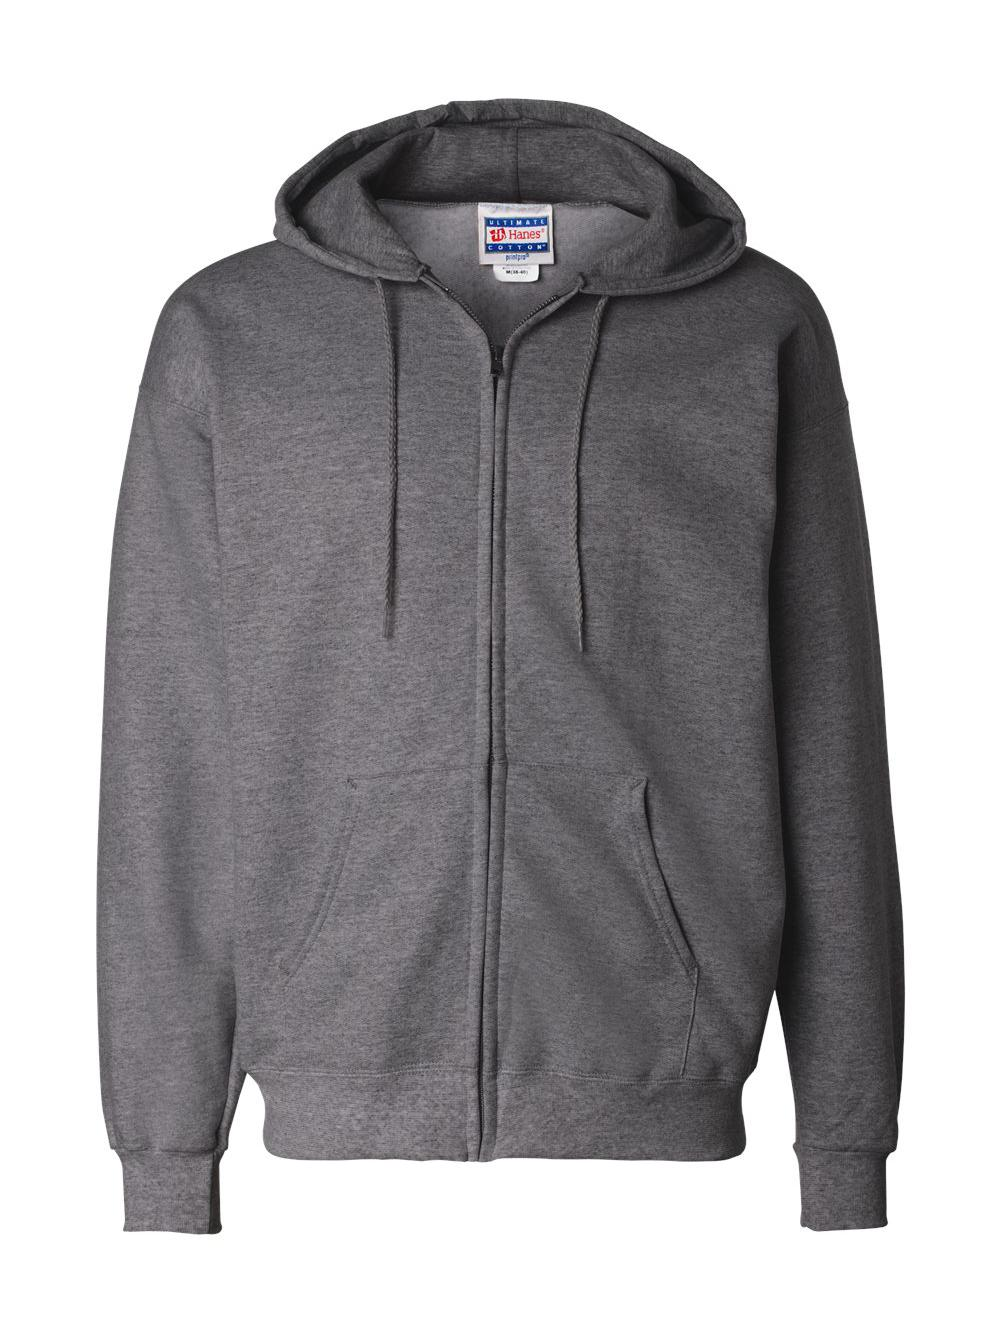 Hanes-Ultimate-Cotton-Full-Zip-Hooded-Sweatshirt-F280 thumbnail 6